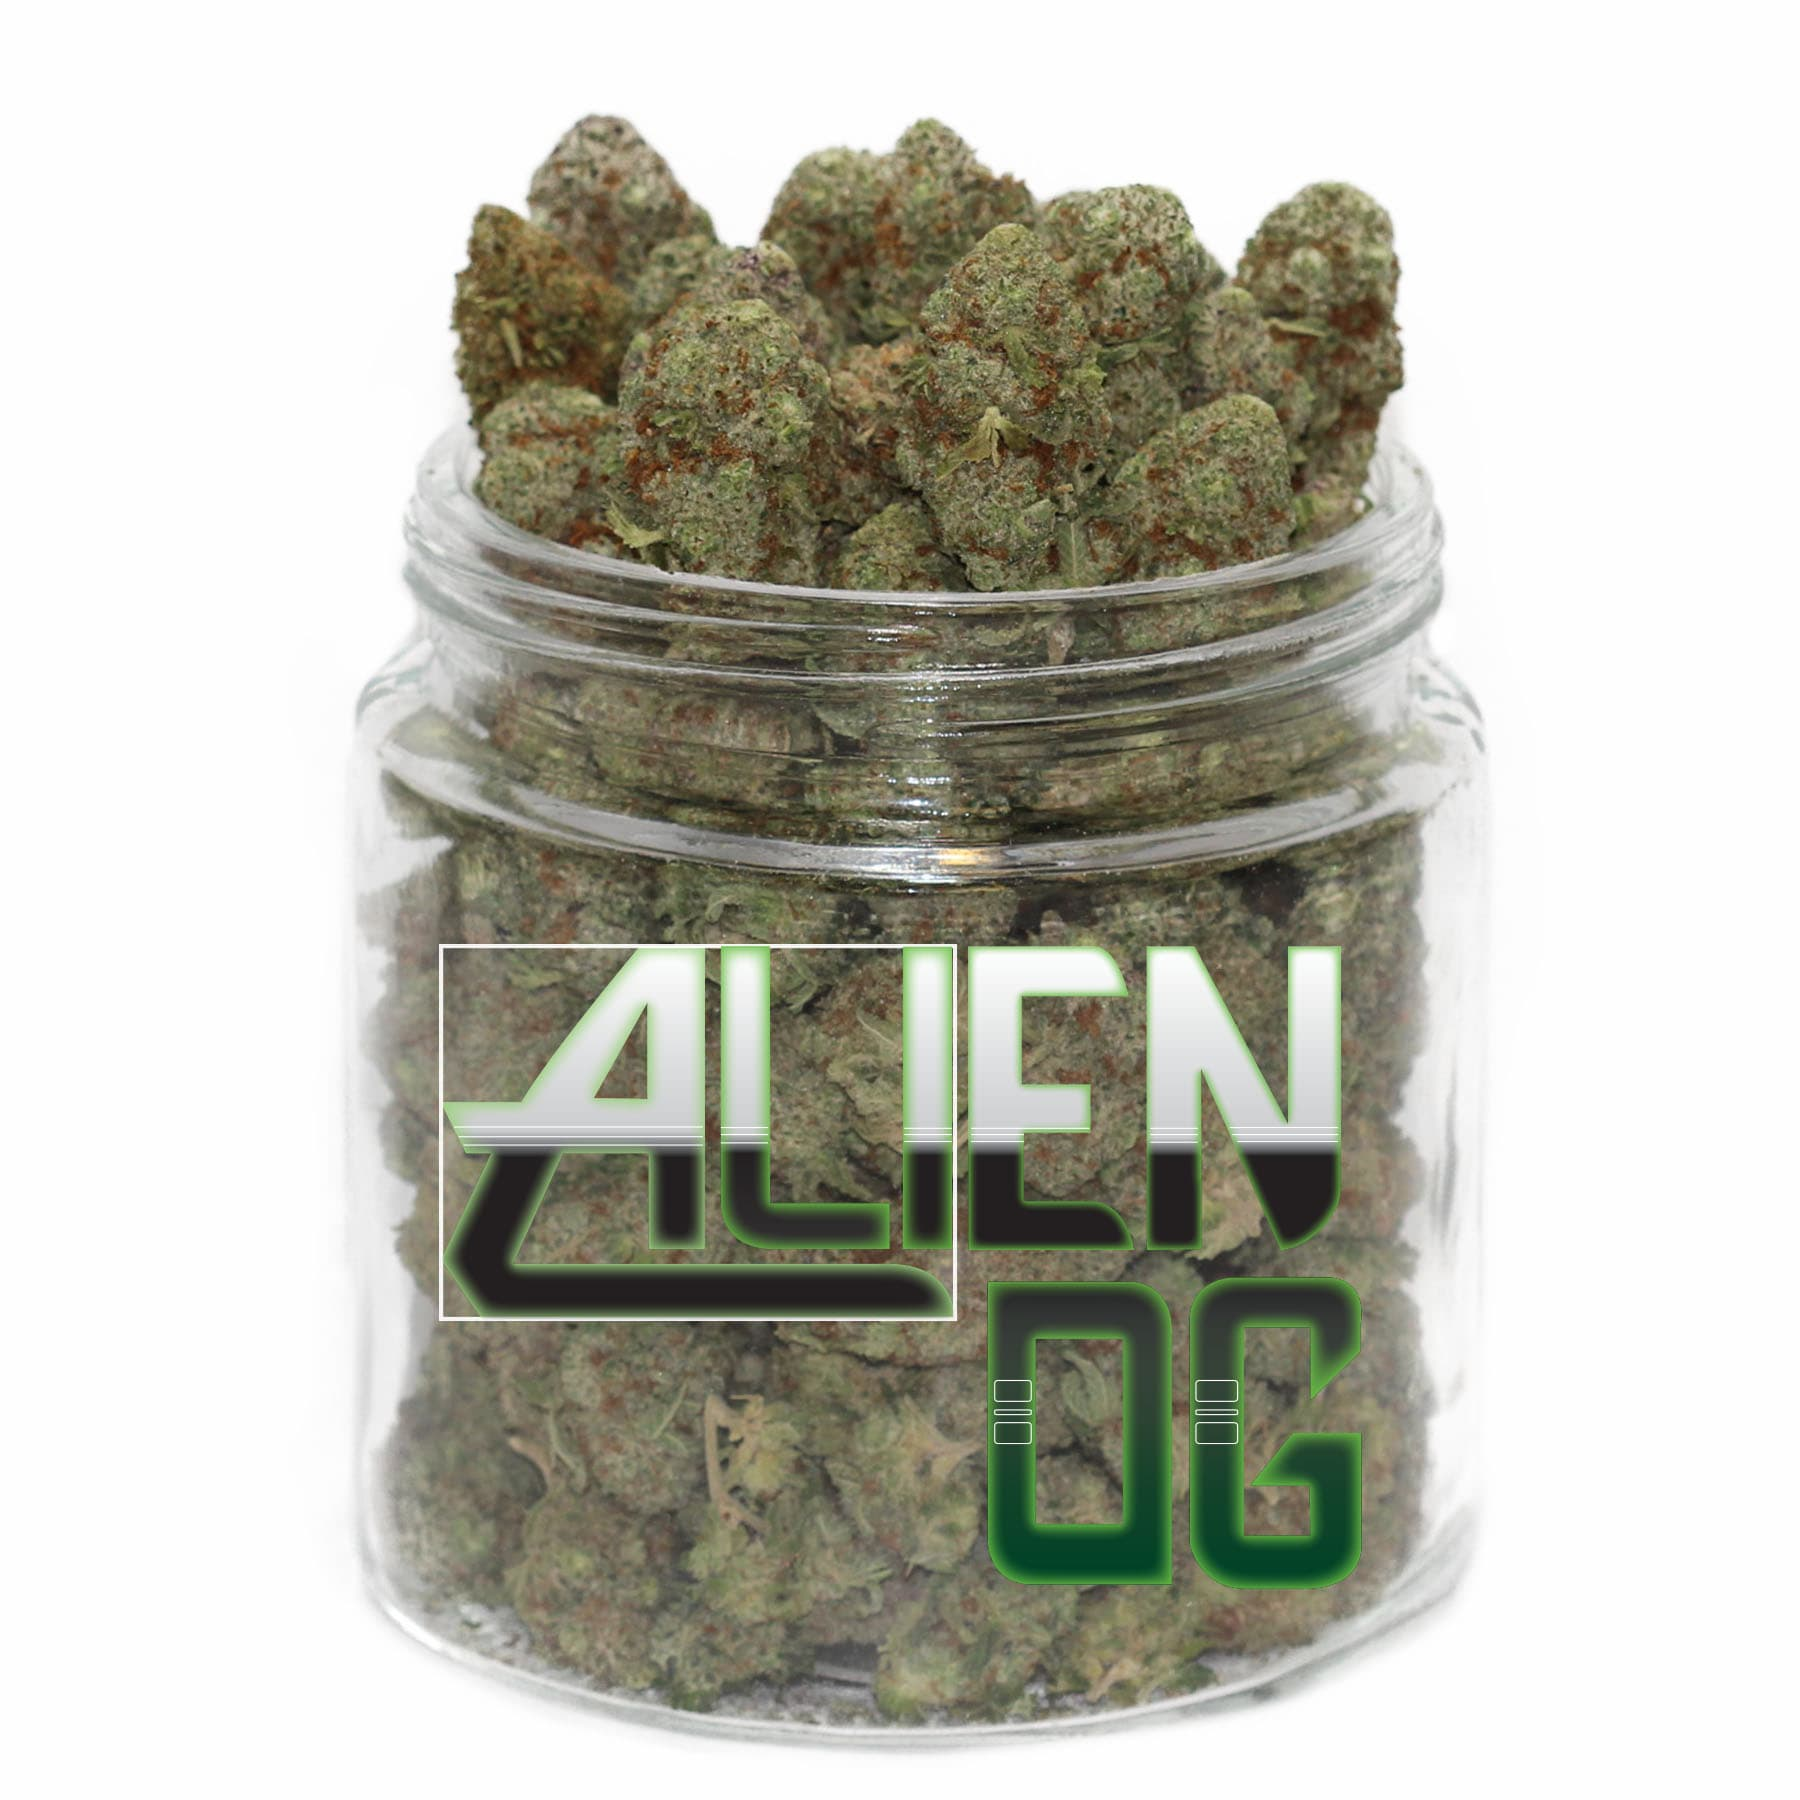 Alien OG (AAAA) by Get Kush - Image © 2018 Get Kush. All Rights Reserved.